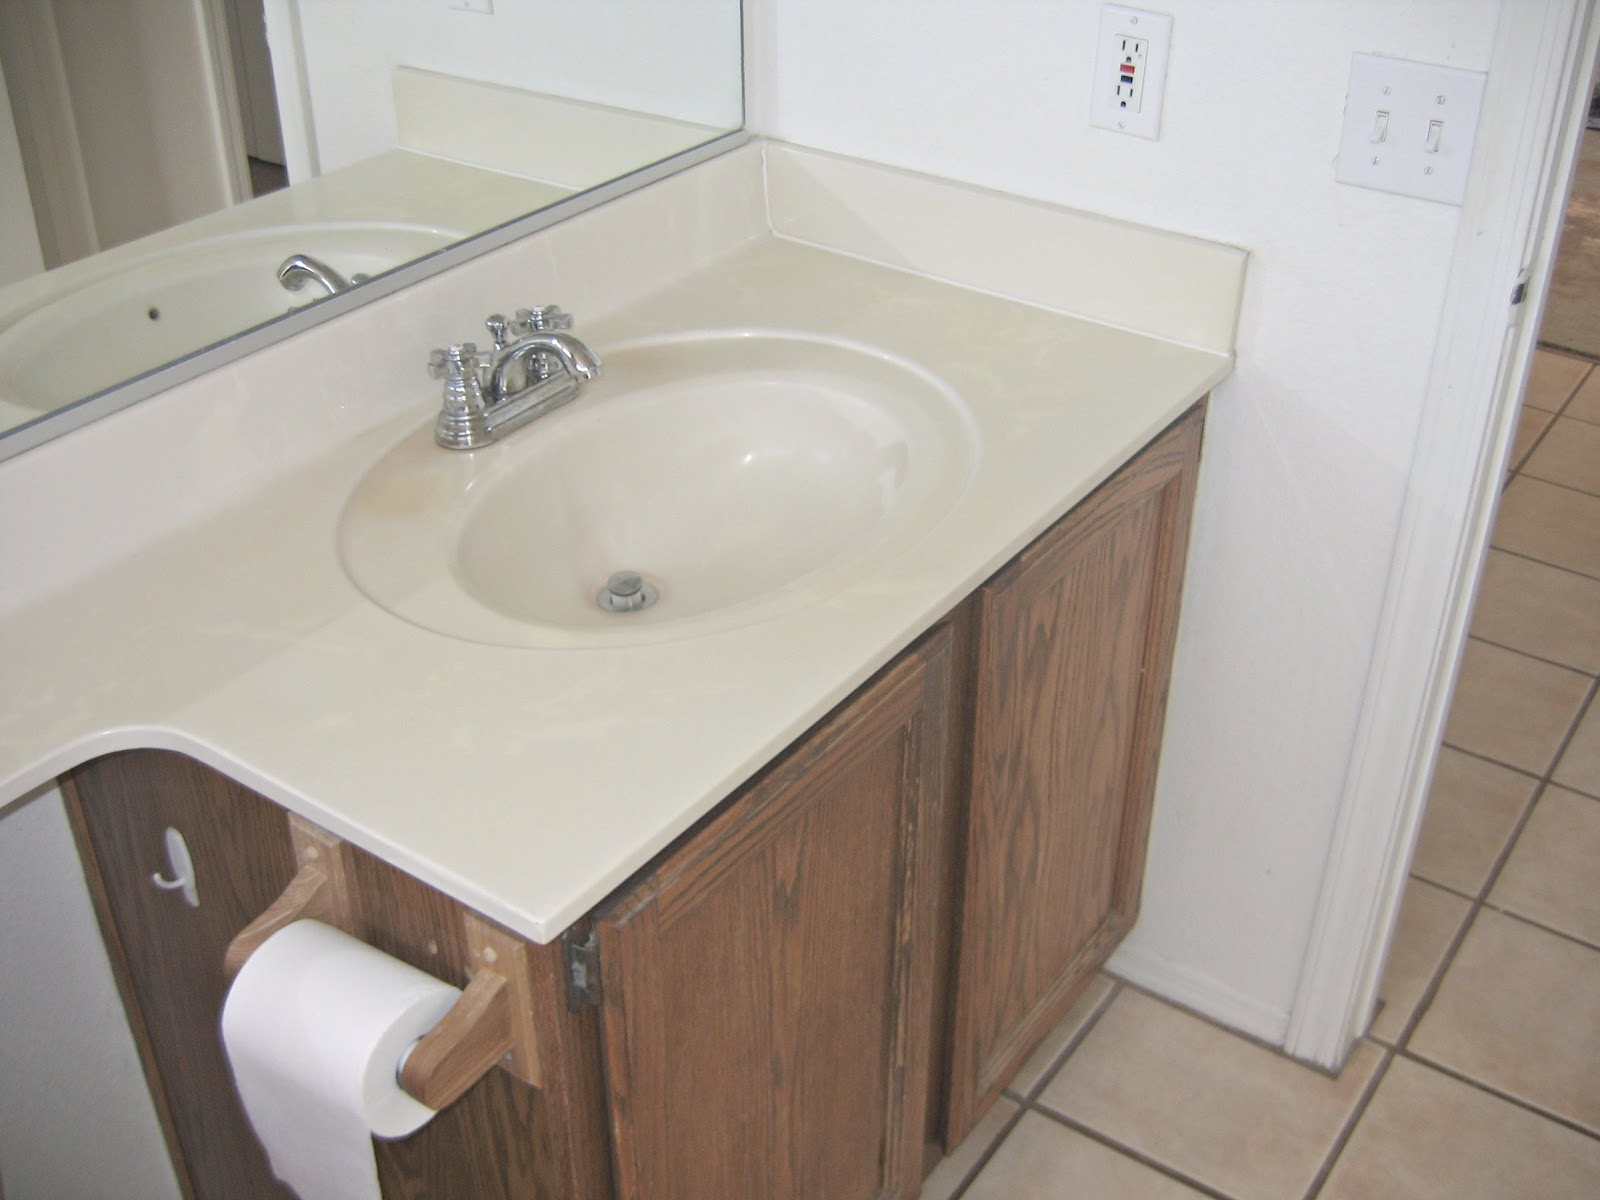 All in one bathroom - Nasty Outdated All In One Sink Countertop Old Cabinet If You Notice Theres Only One Outlet In This Picture Its So Nice That Handy Hunk Is An